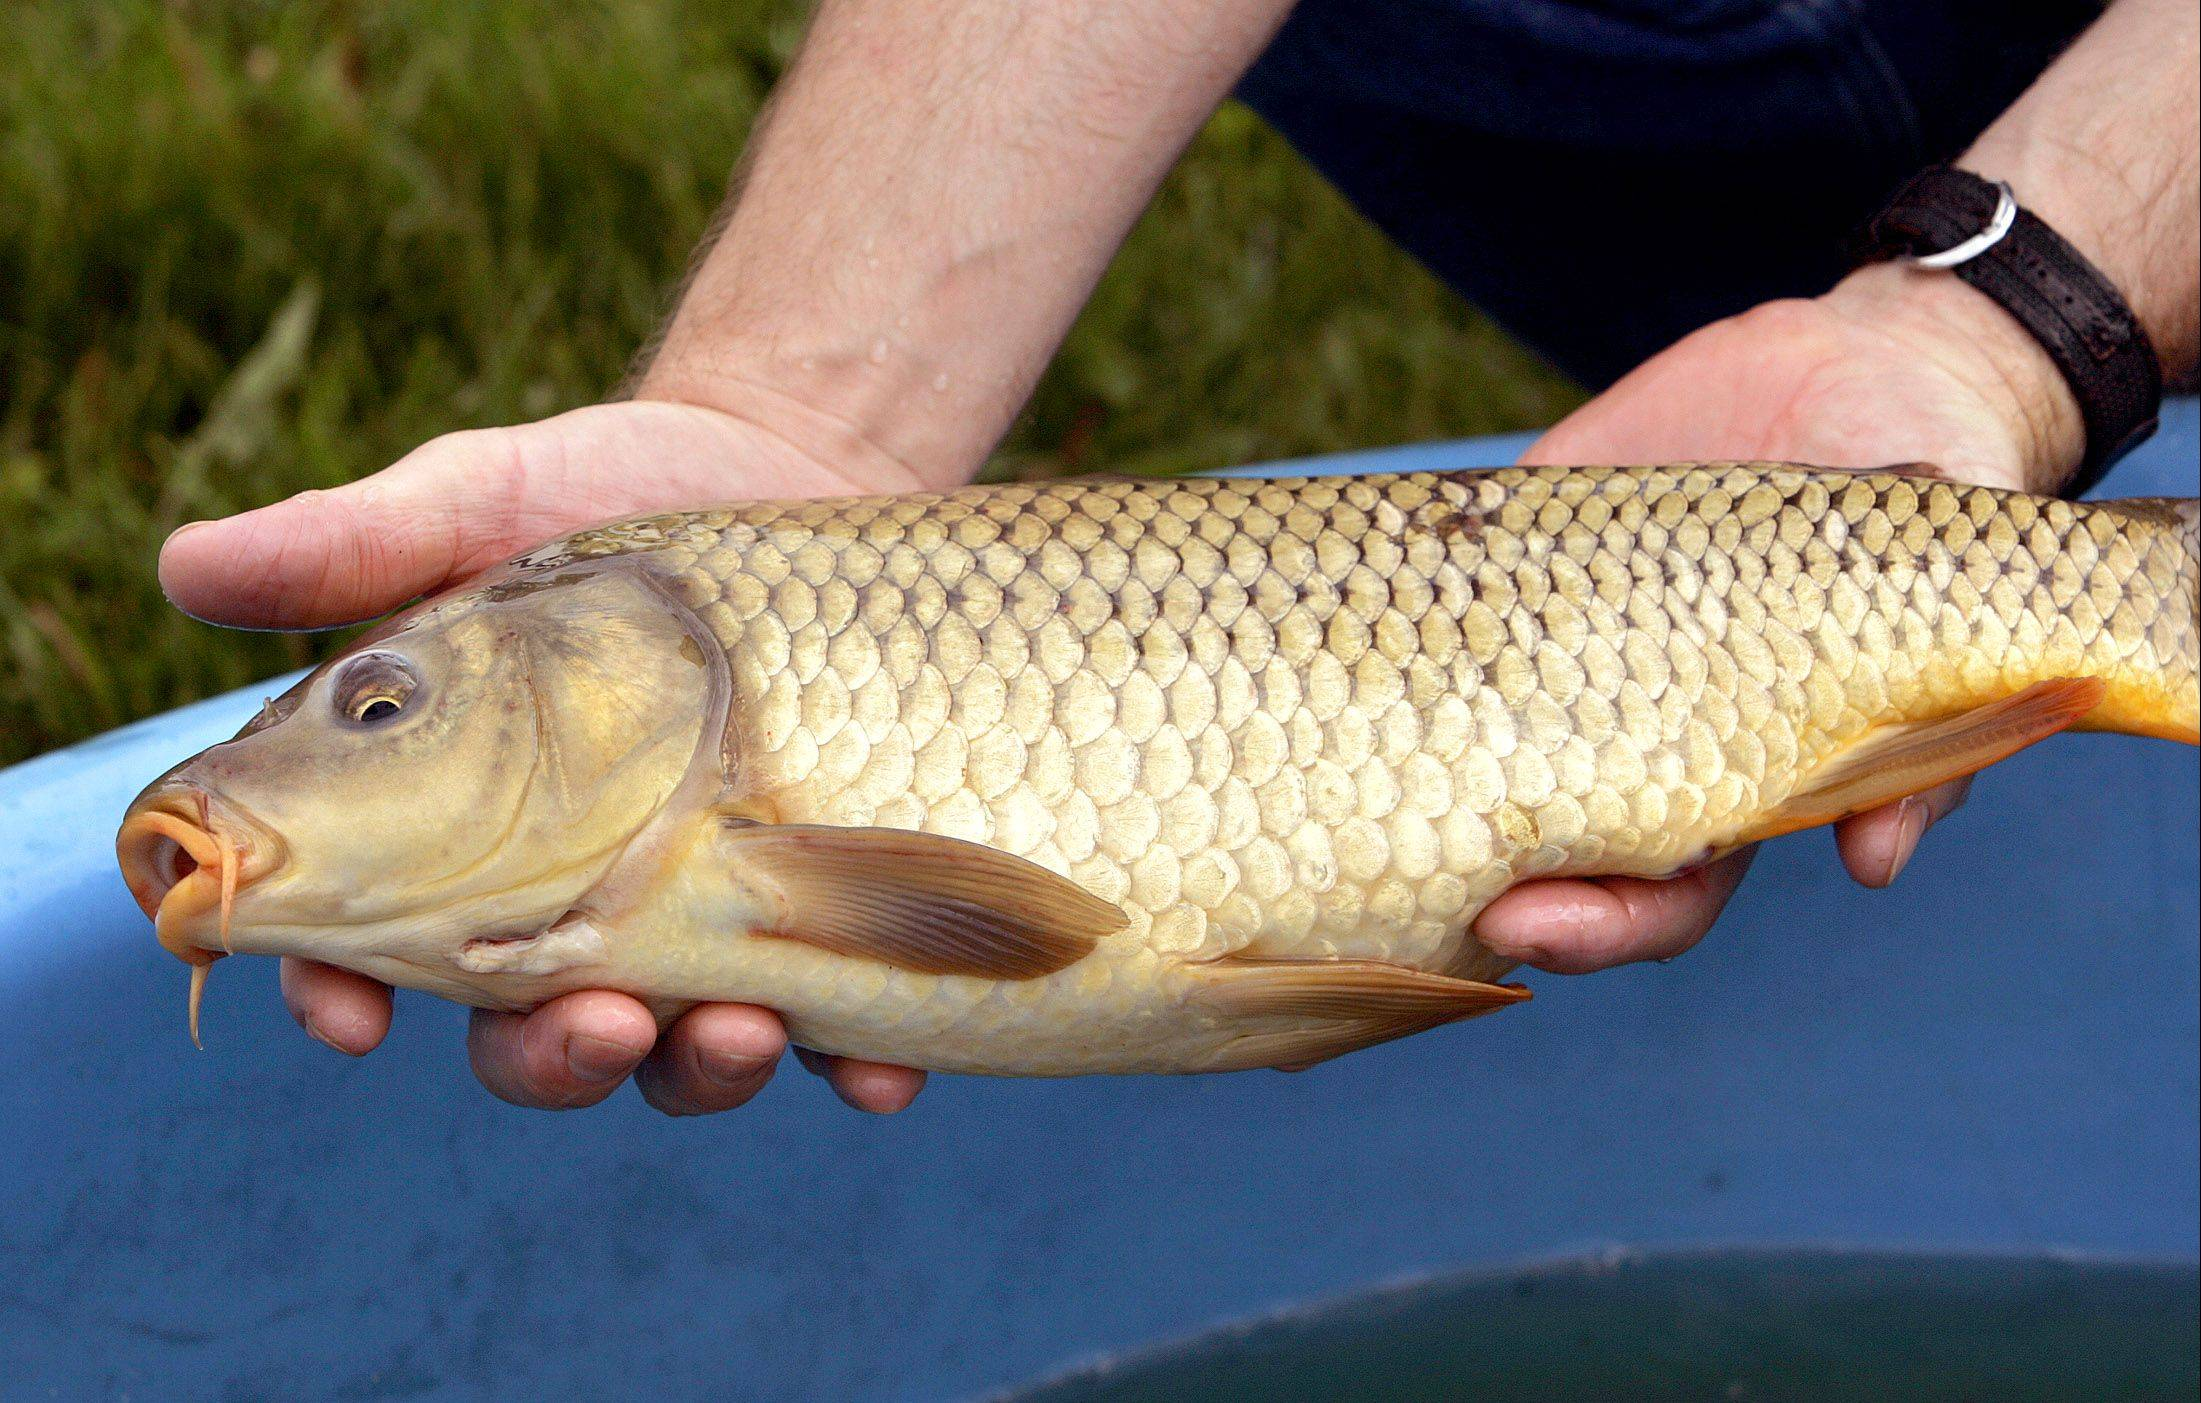 Opinions on carp are mostly a matter of perspective